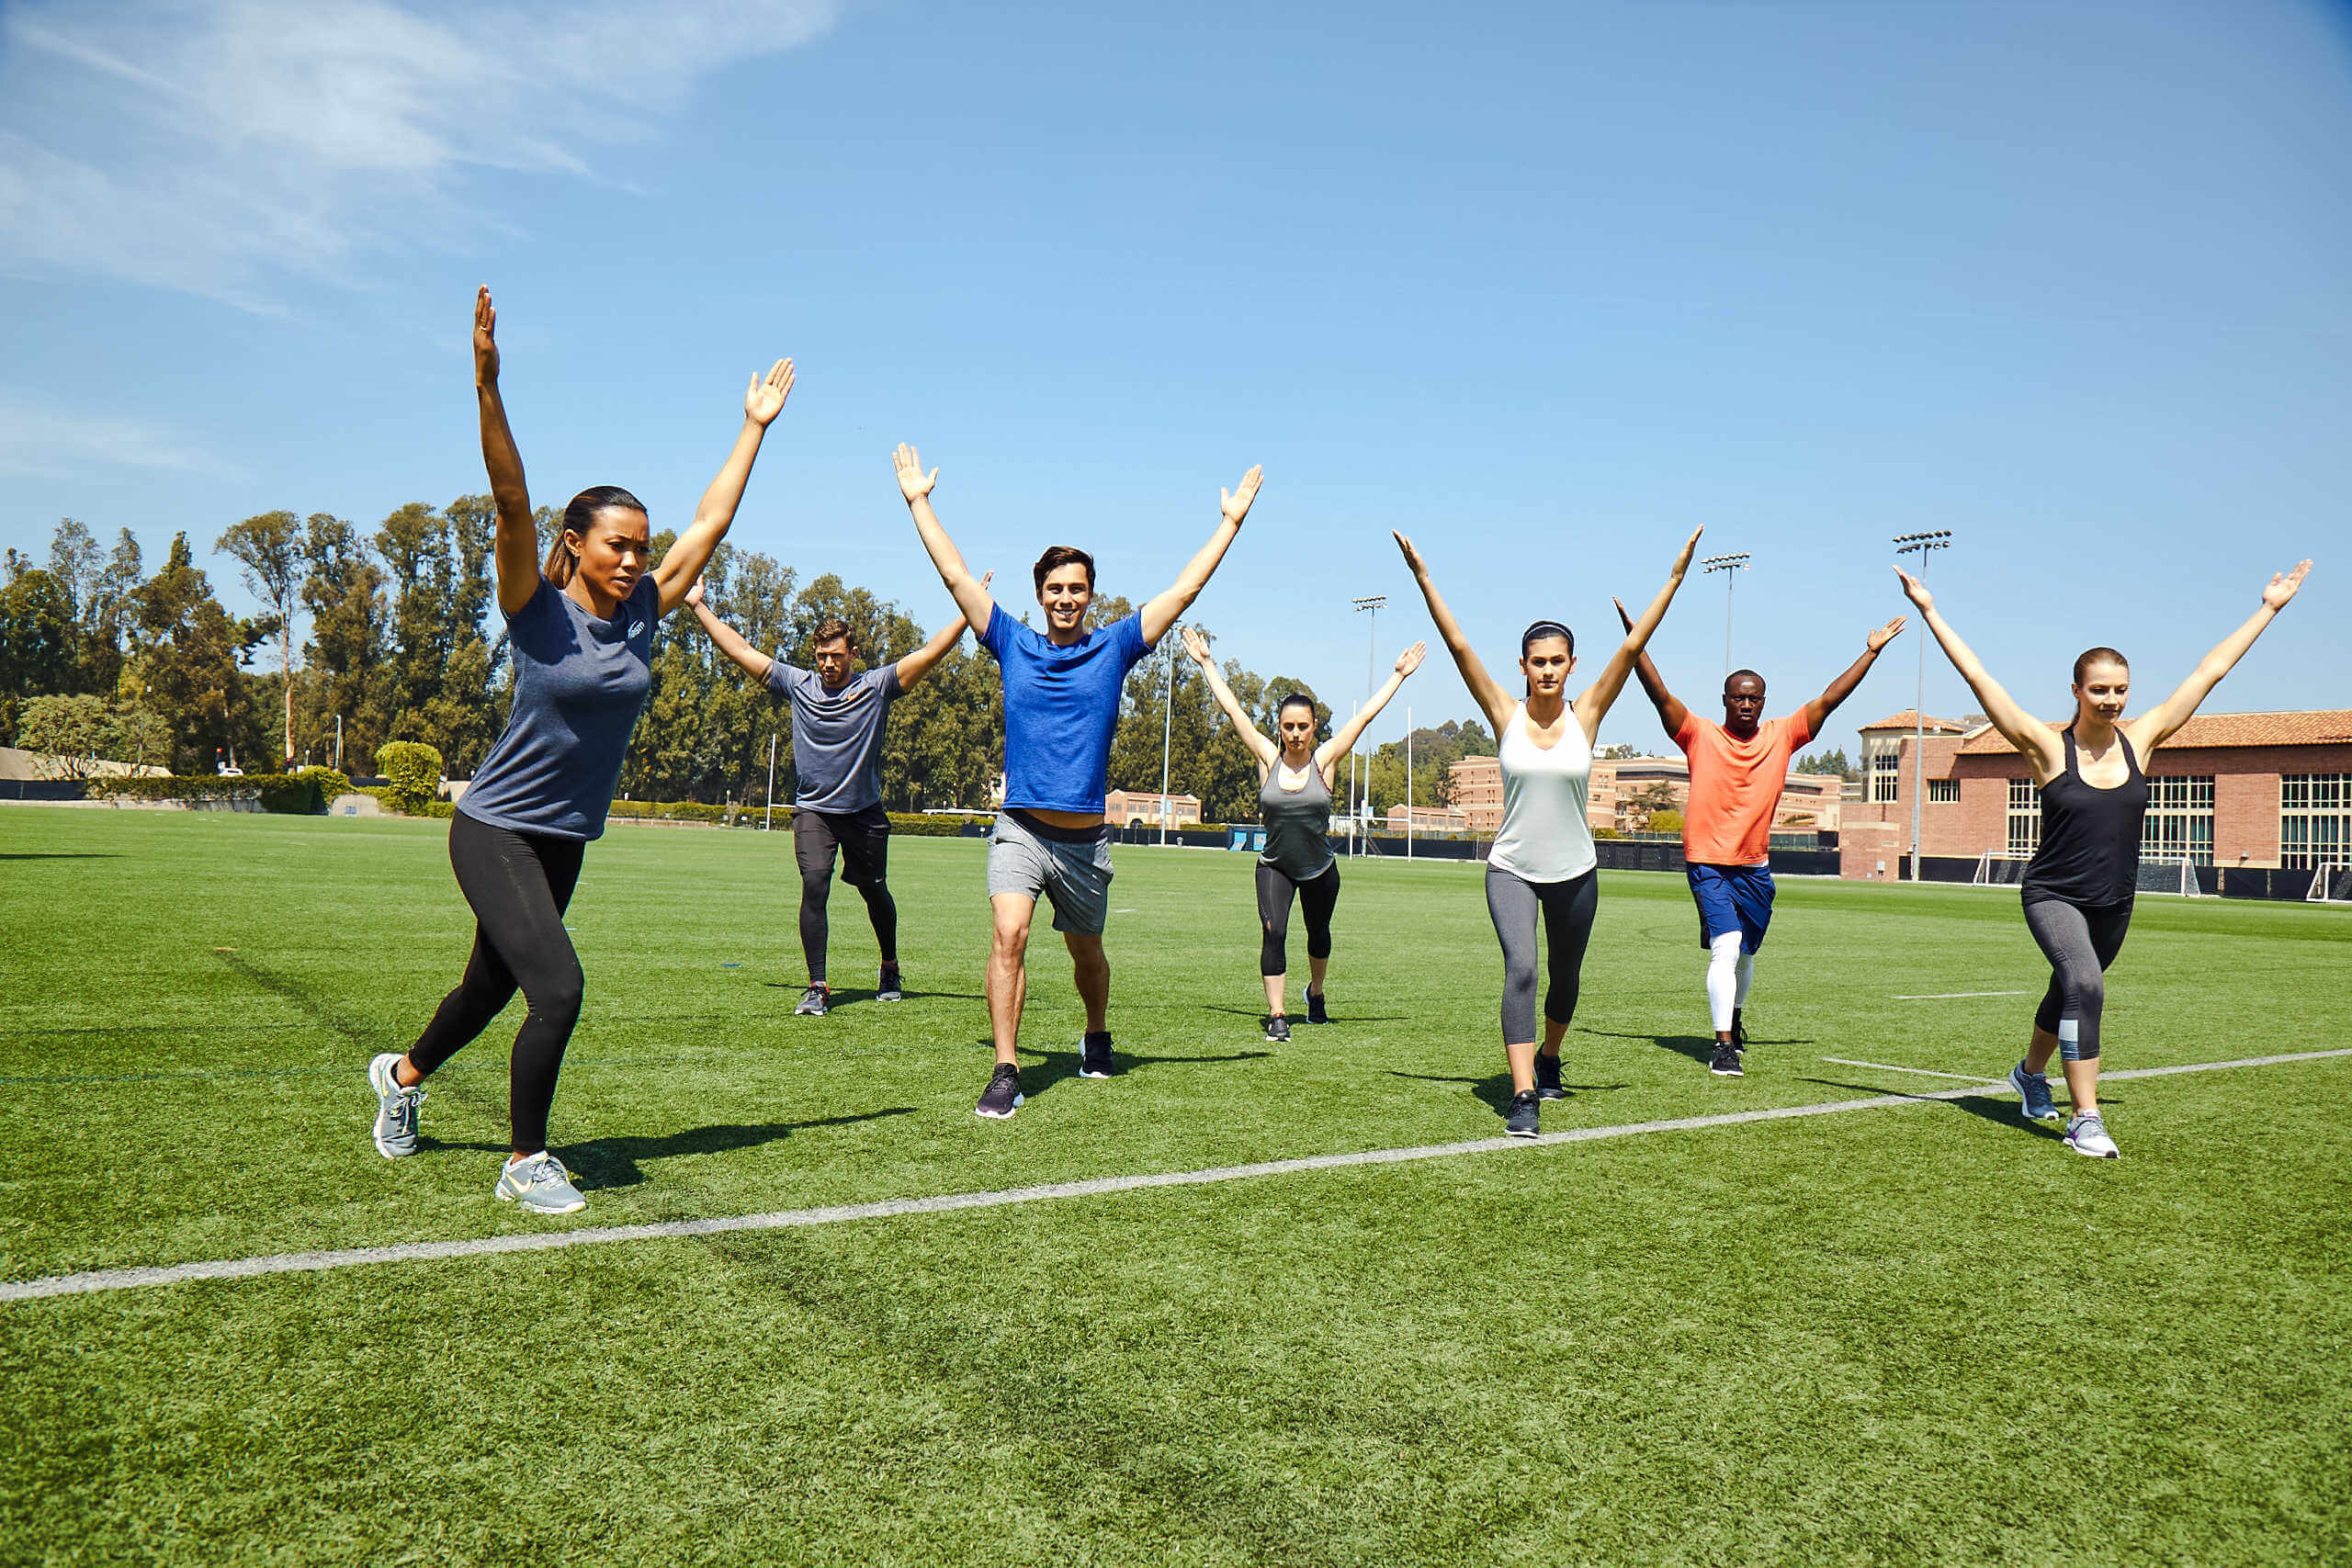 Group workout class doing exercise outdoors